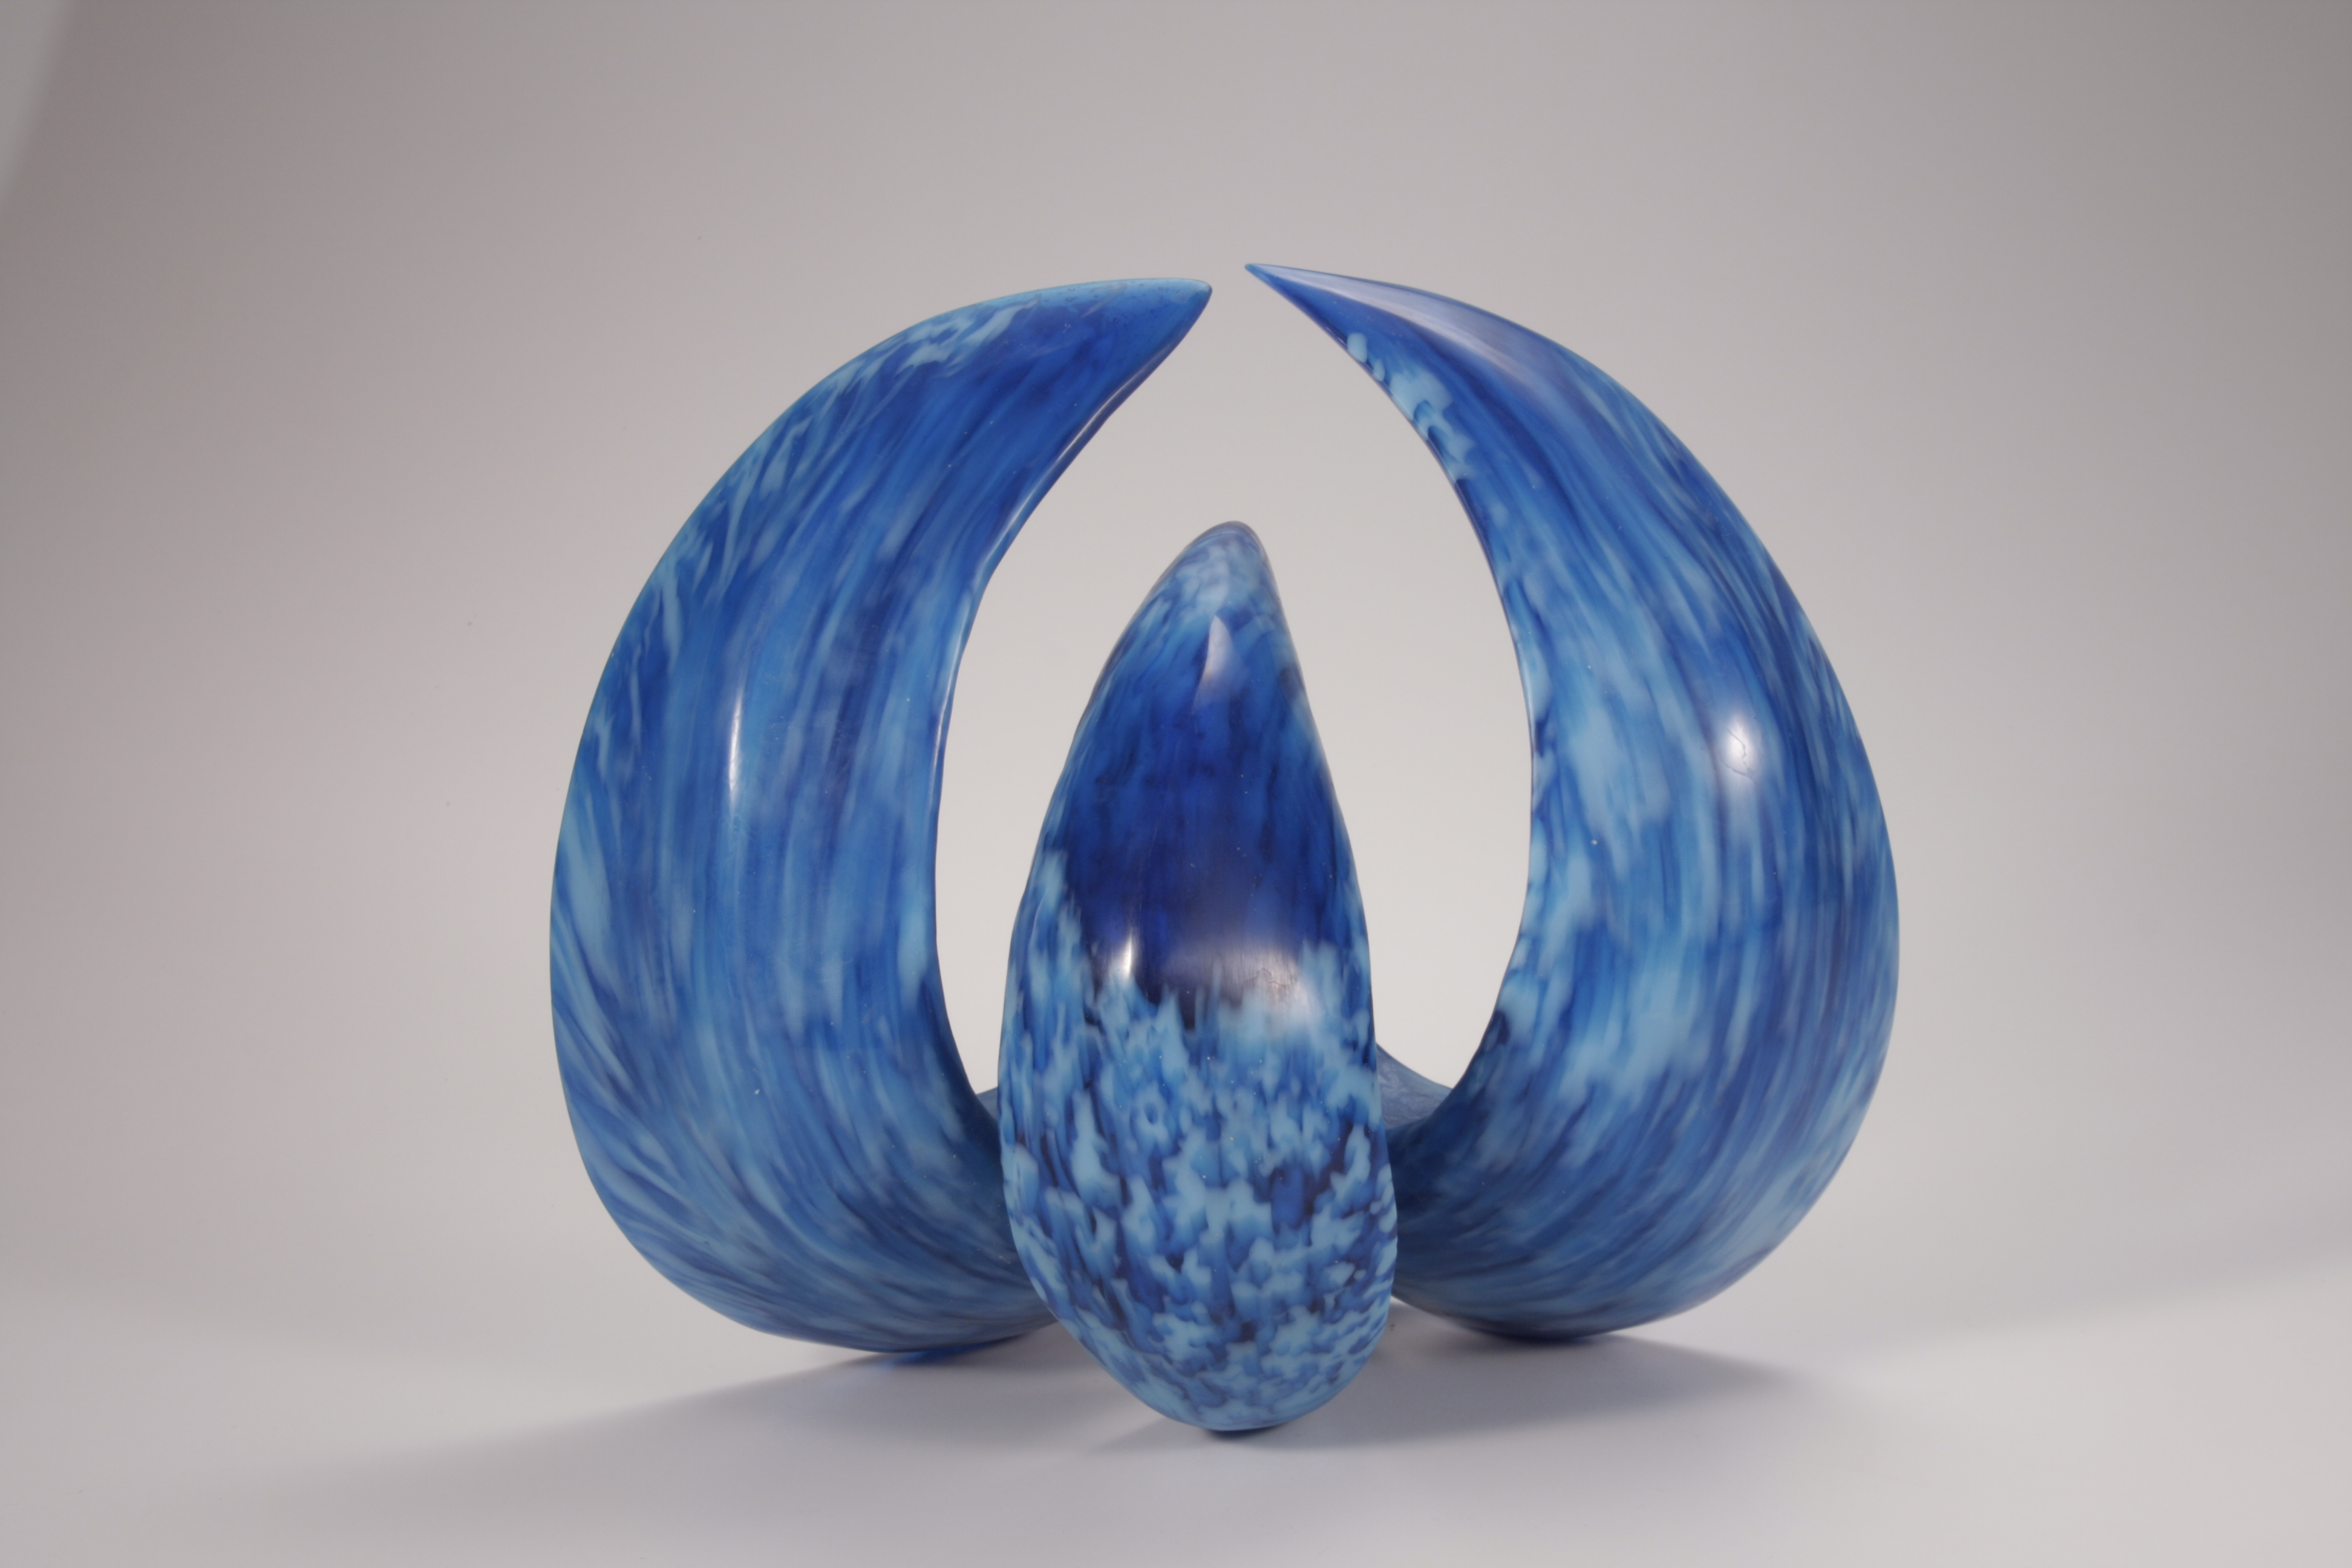 Sculpture of cast glass wave form in turquoise and light blue, back view.